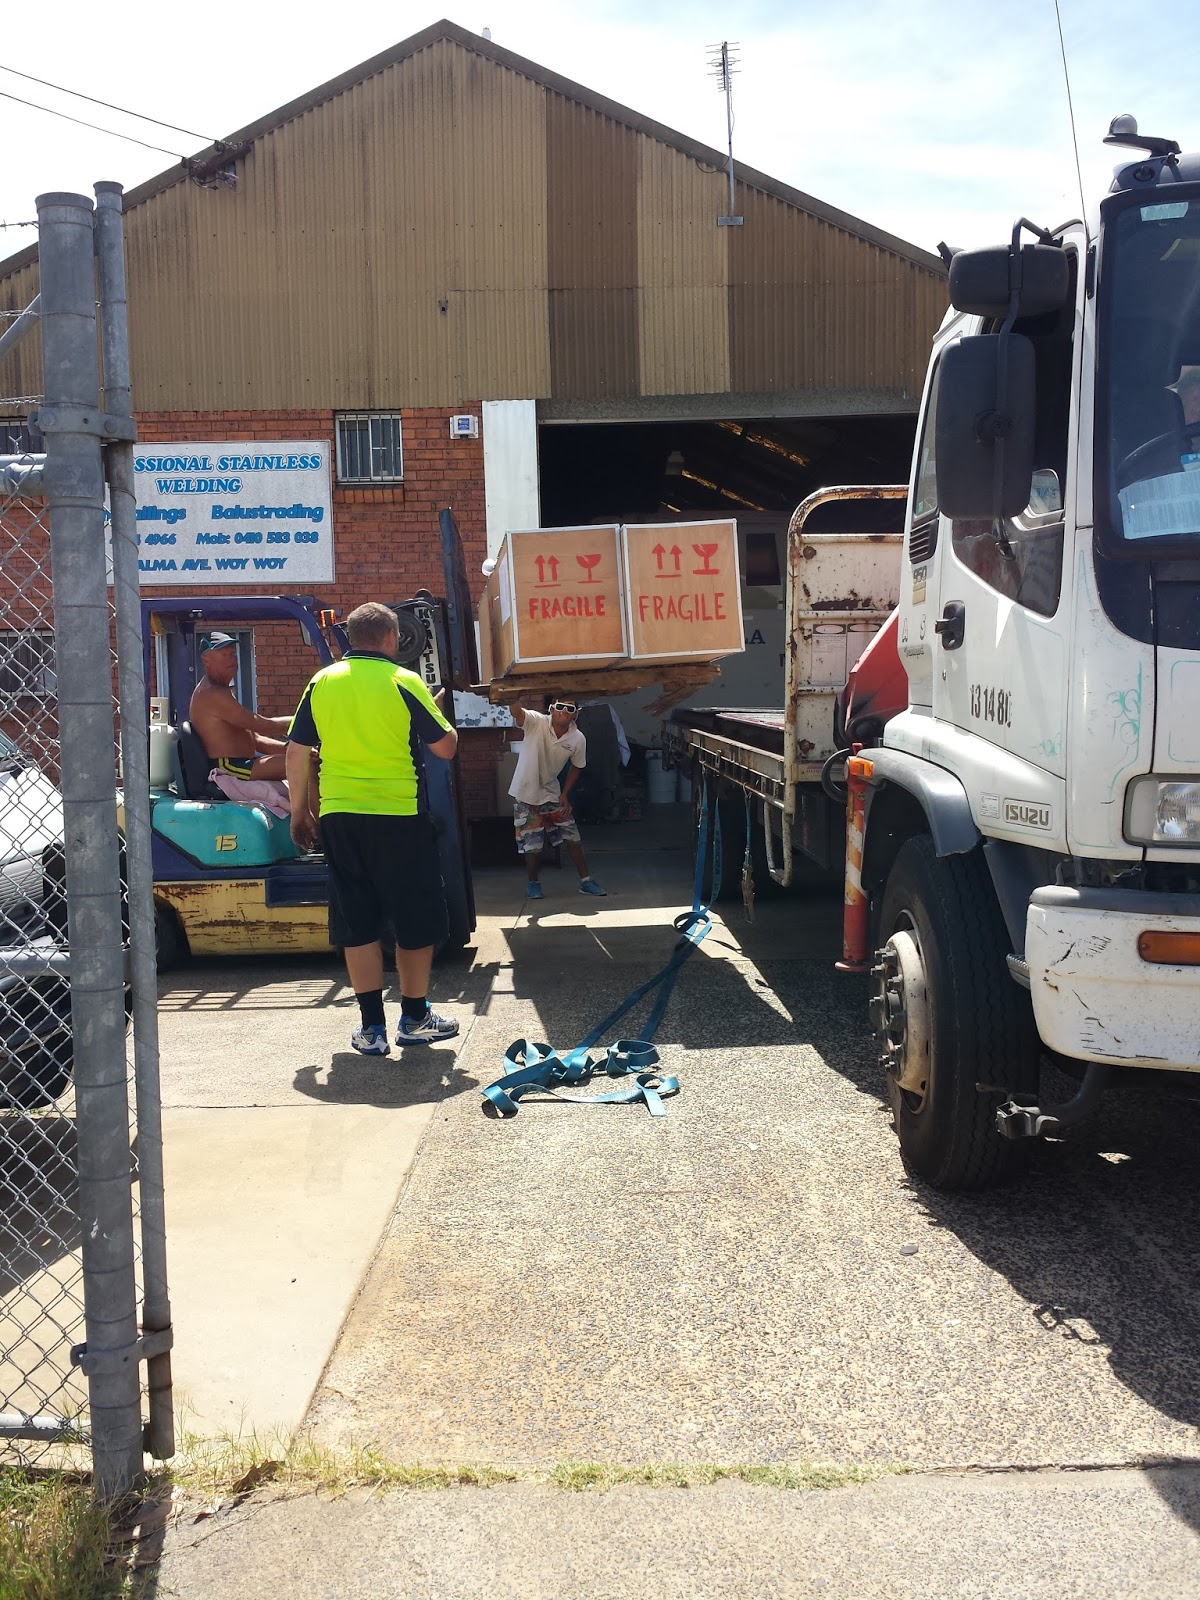 01-03-2016-australia-siebert-surfboards-01